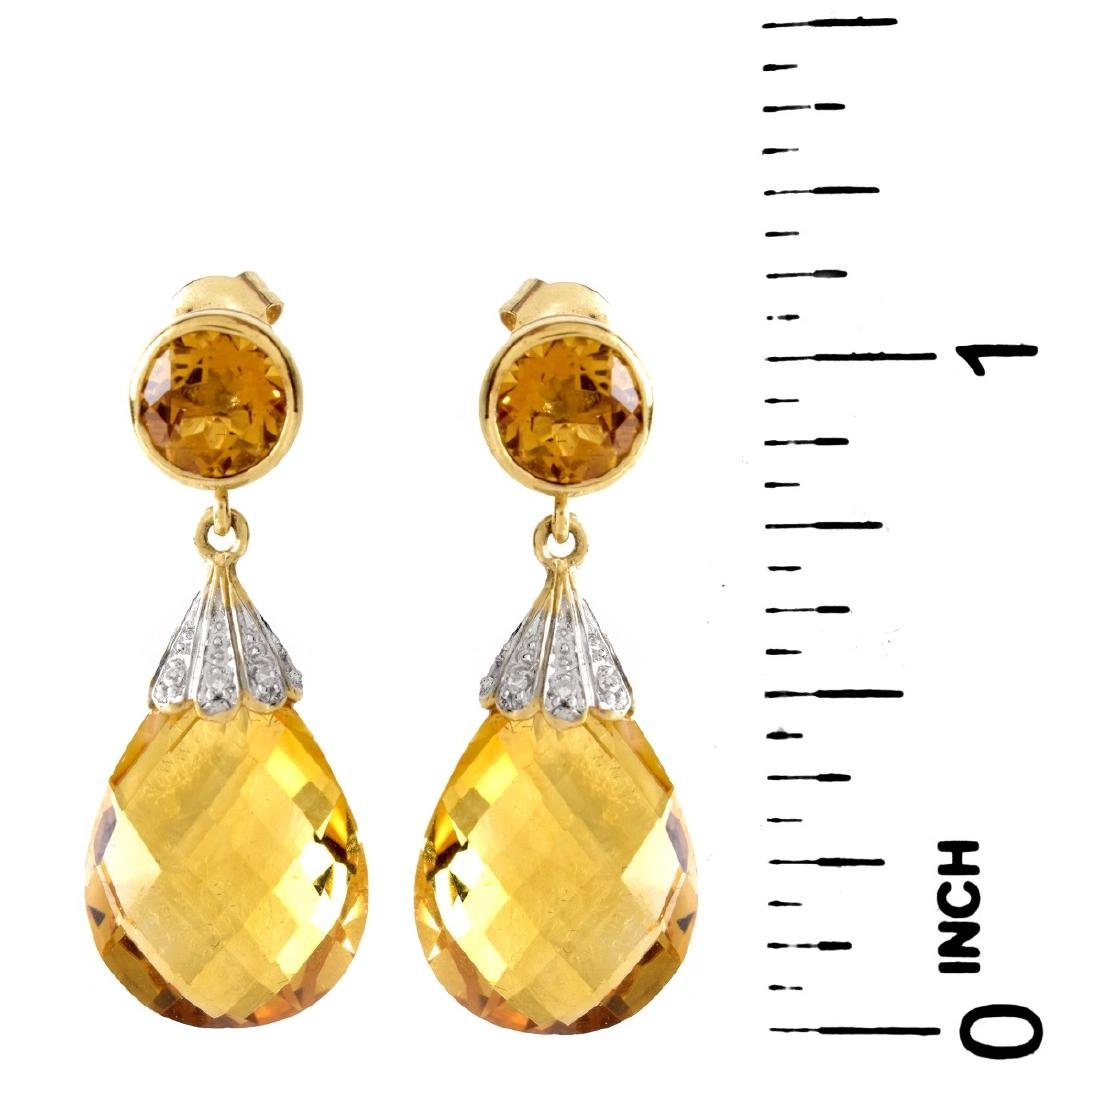 Citrine, Diamond and 14K Gold Pendant Earrings - 4